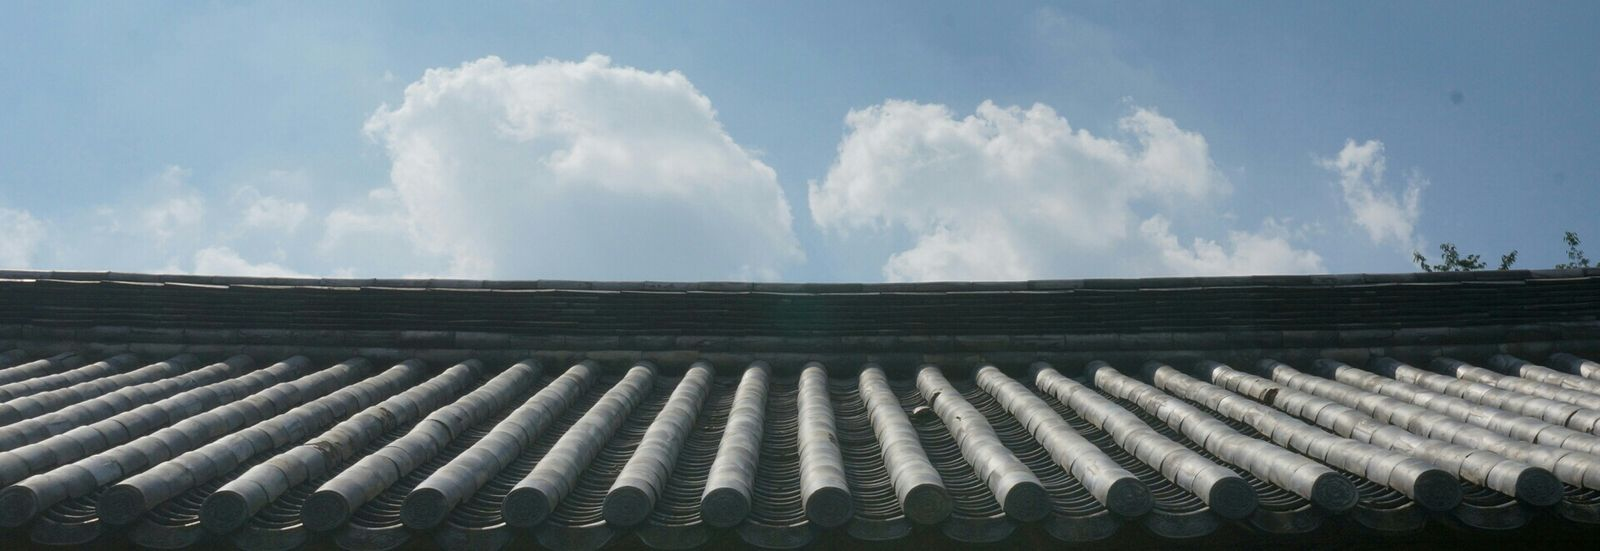 Korea Korean Roof Tile Sky Roof Tiles